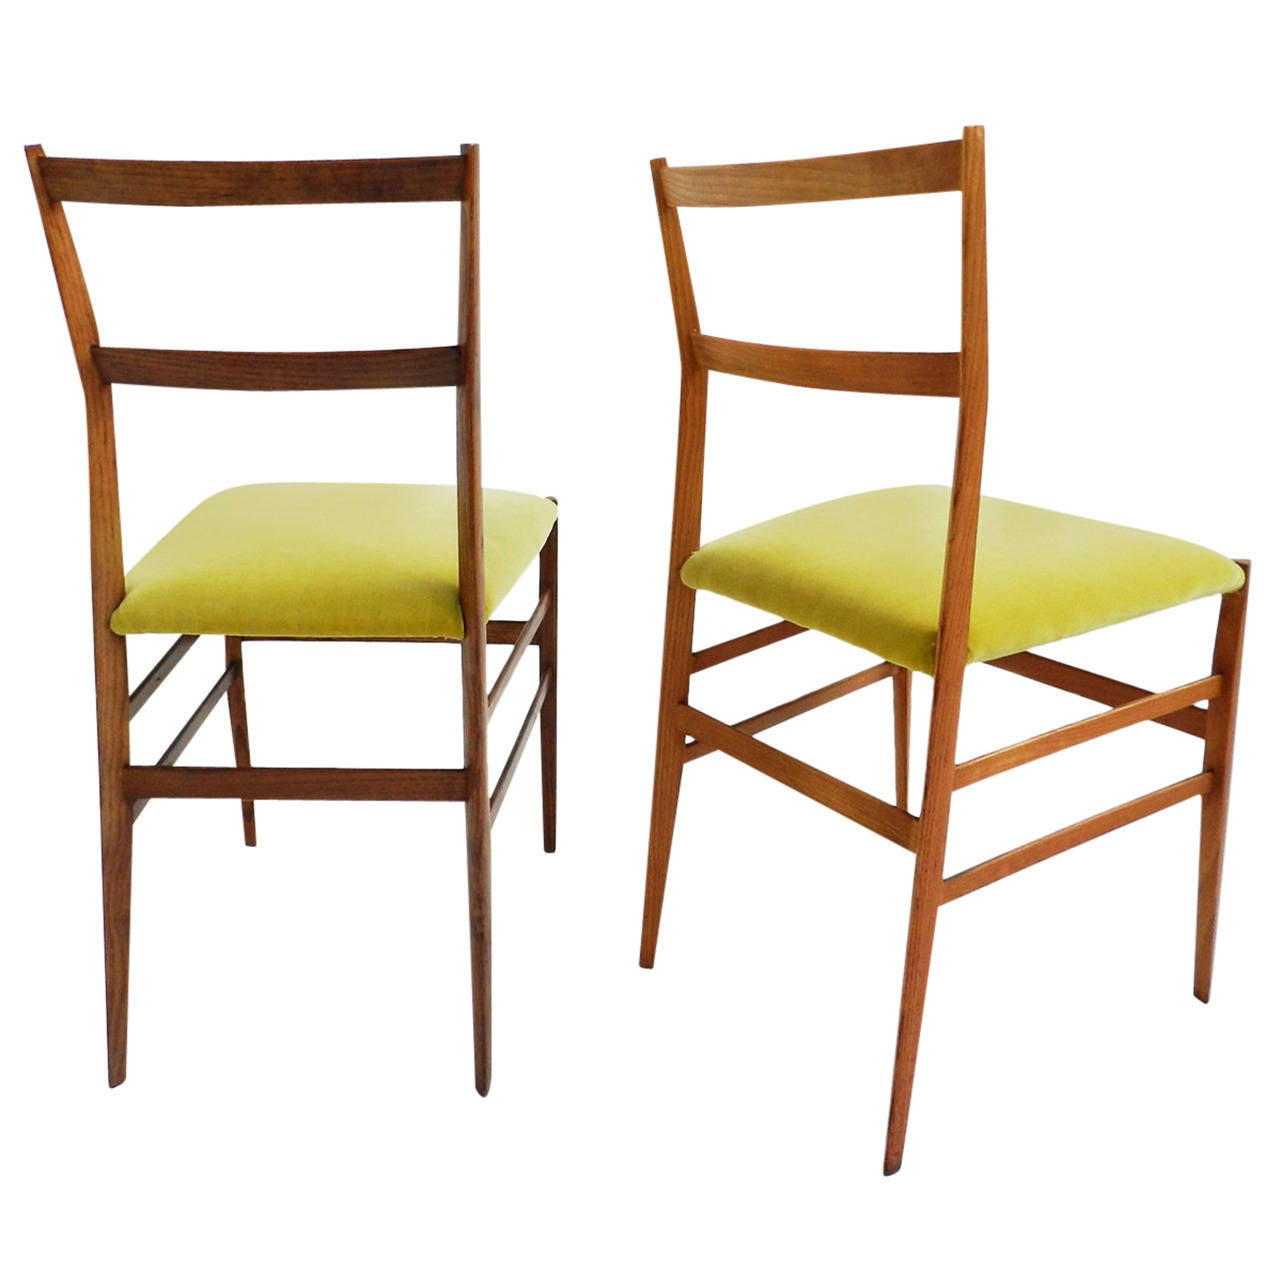 Gio Ponti Chairs Mod. Superleggera 1